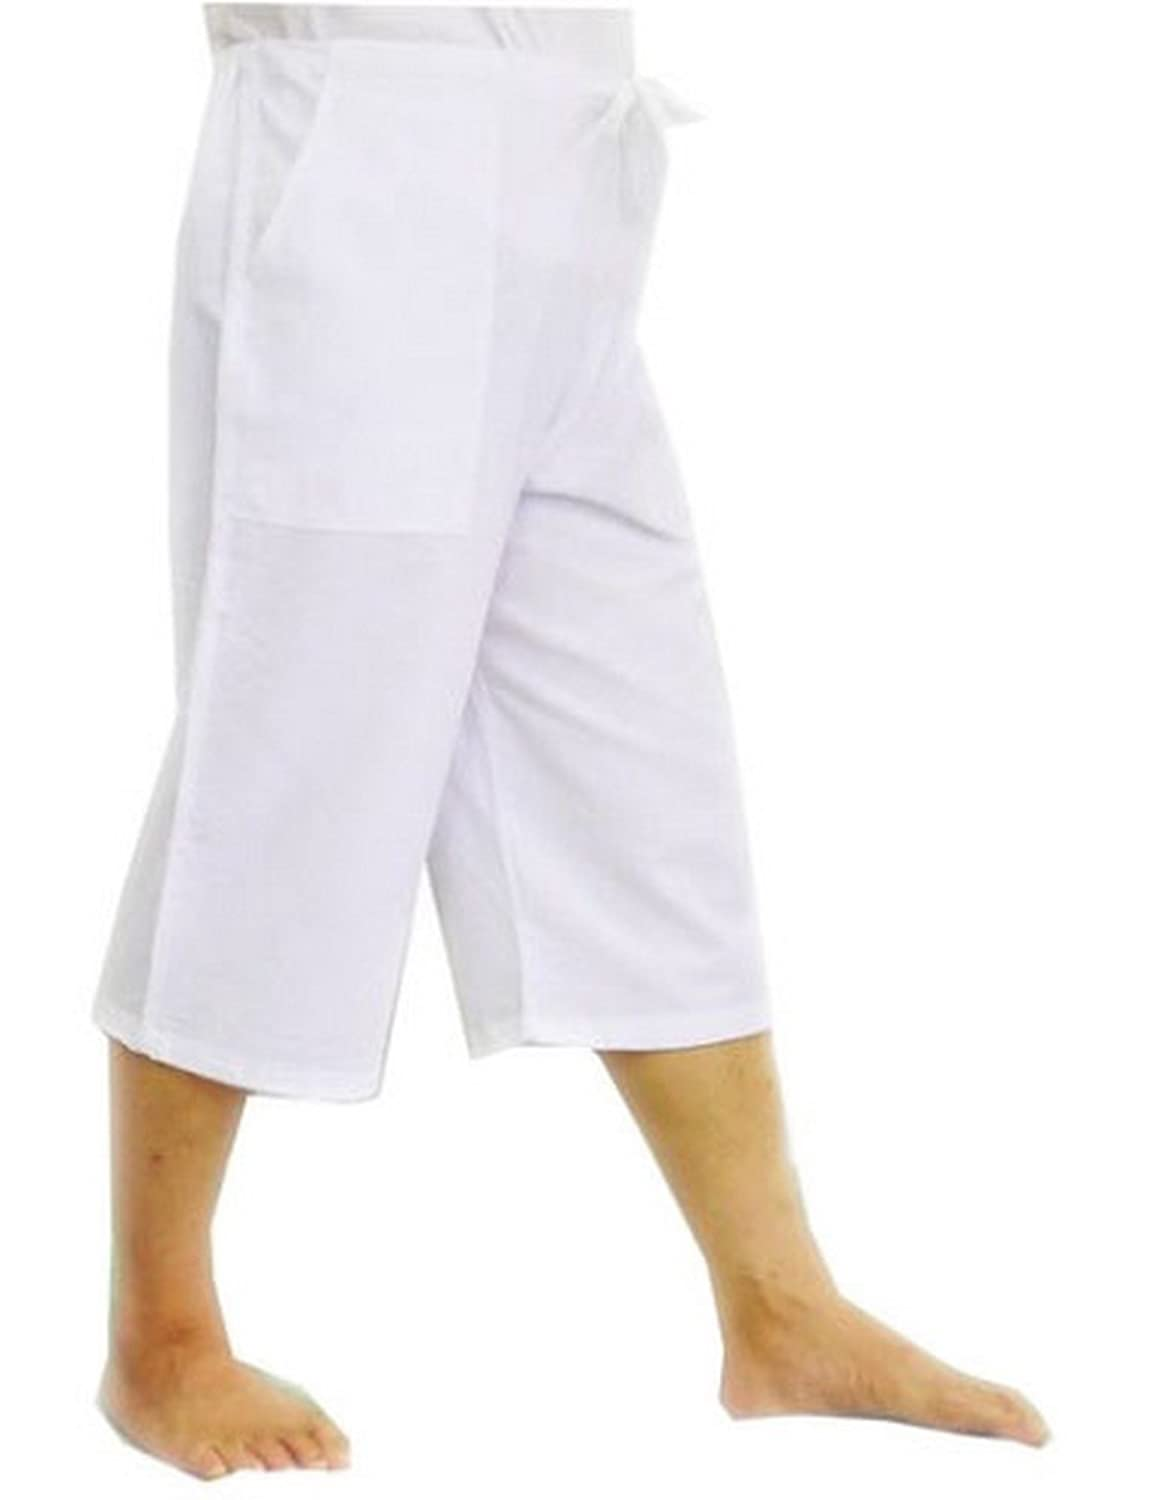 3/4 Pants Men and Women Unisex 100% Cotton Casual Drawstring Loose Capri Yoga Pajama Free Size,3 Pockets SPICY SERVED.